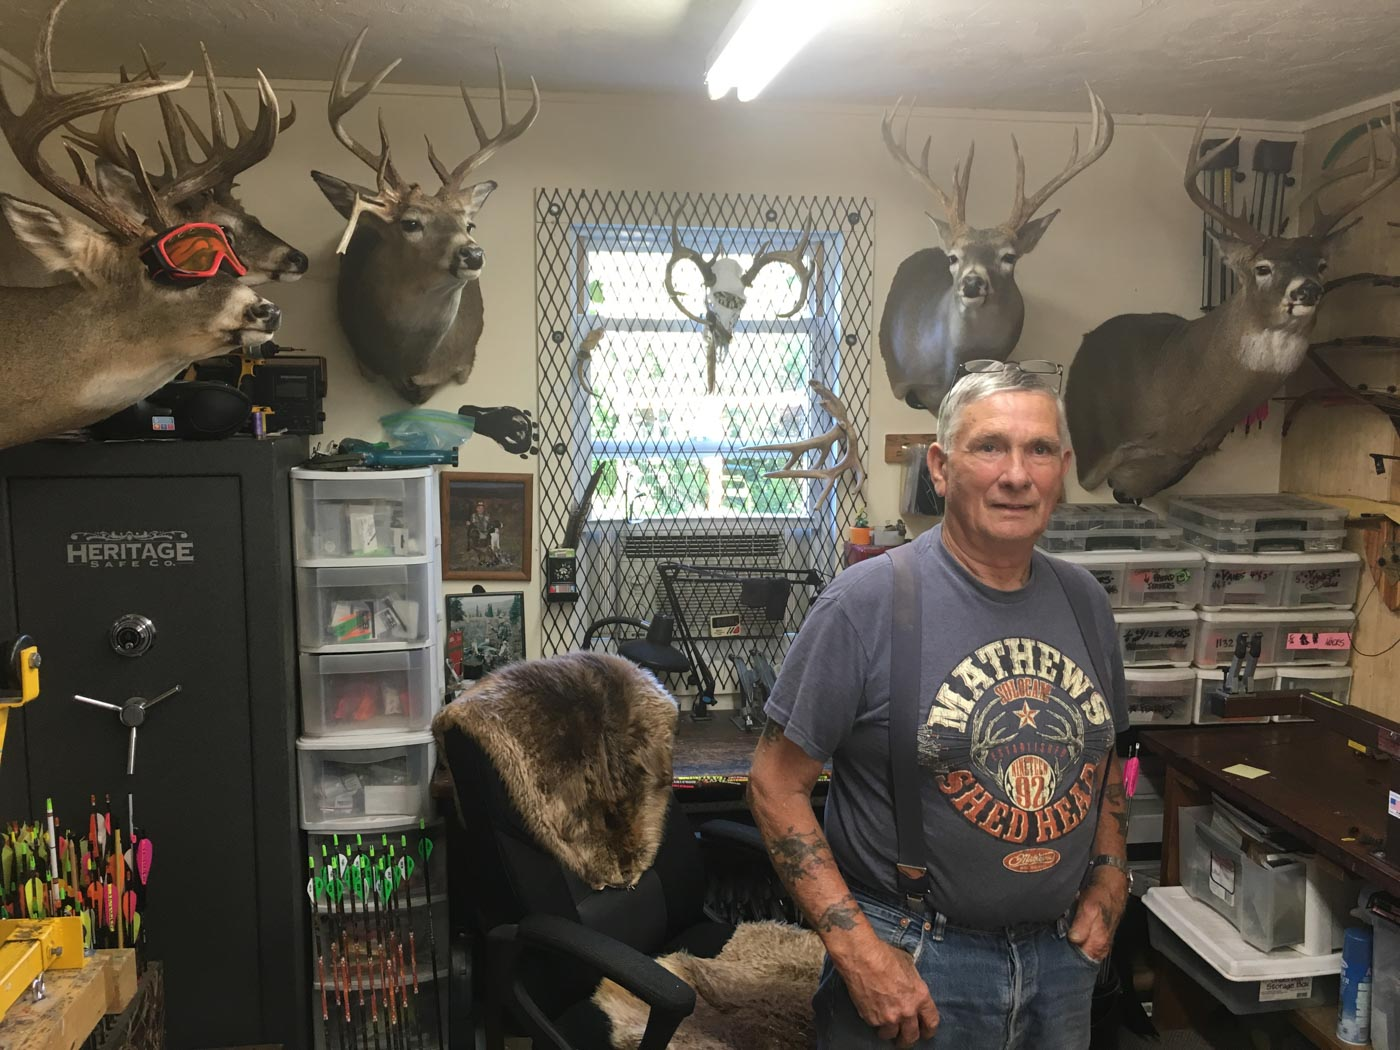 Pete in the shop